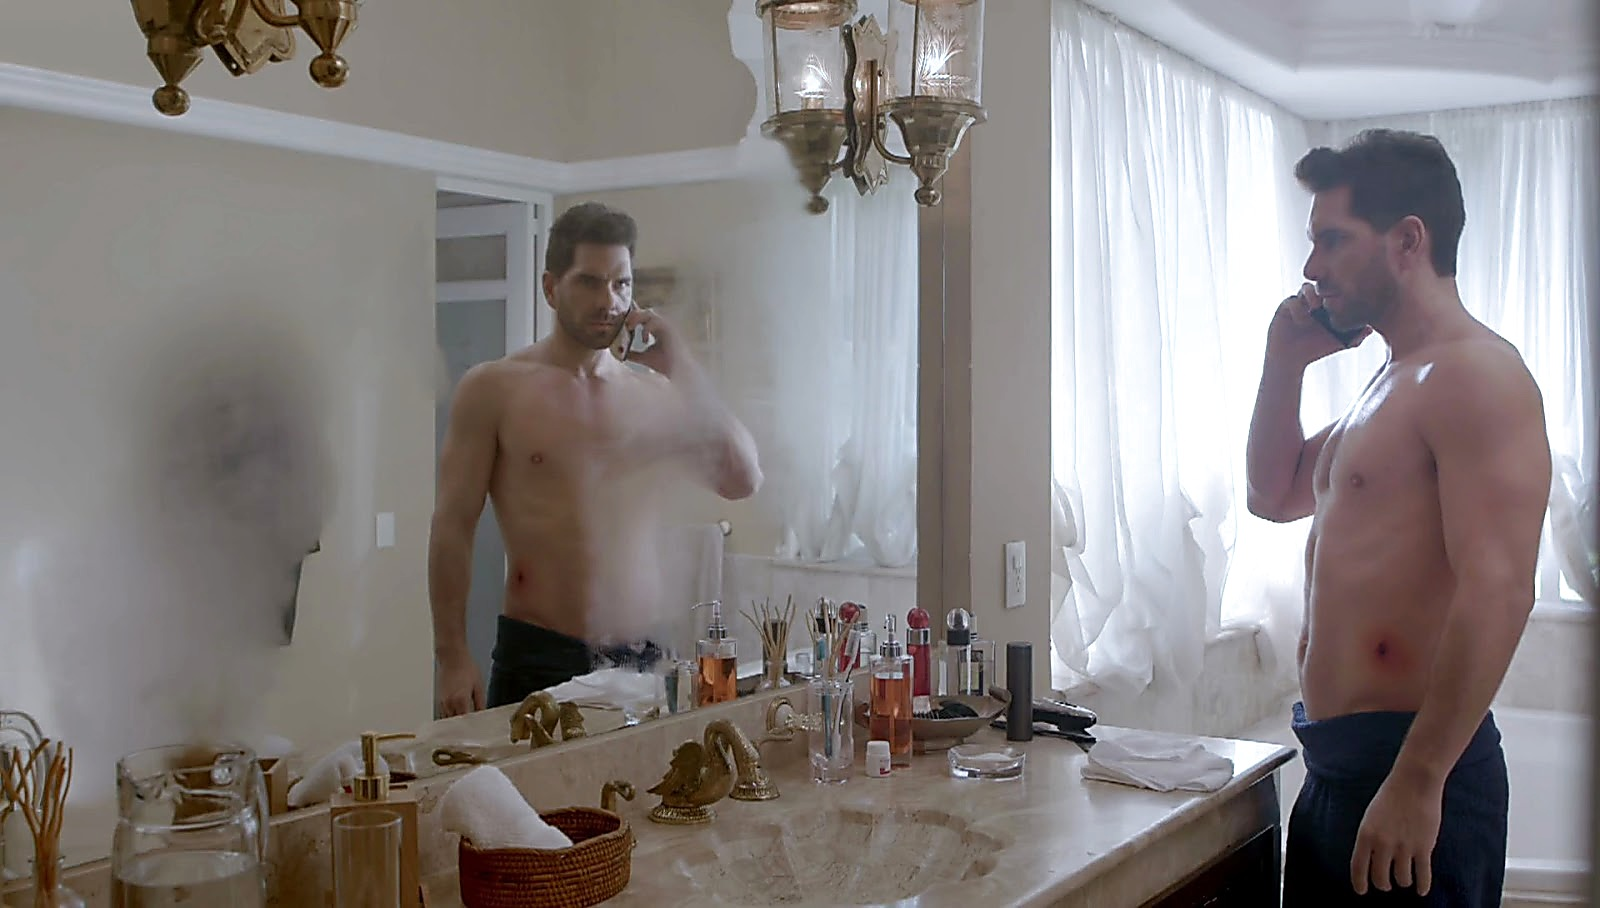 Arap Bethke sexy shirtless scene April 11, 2017, 12pm